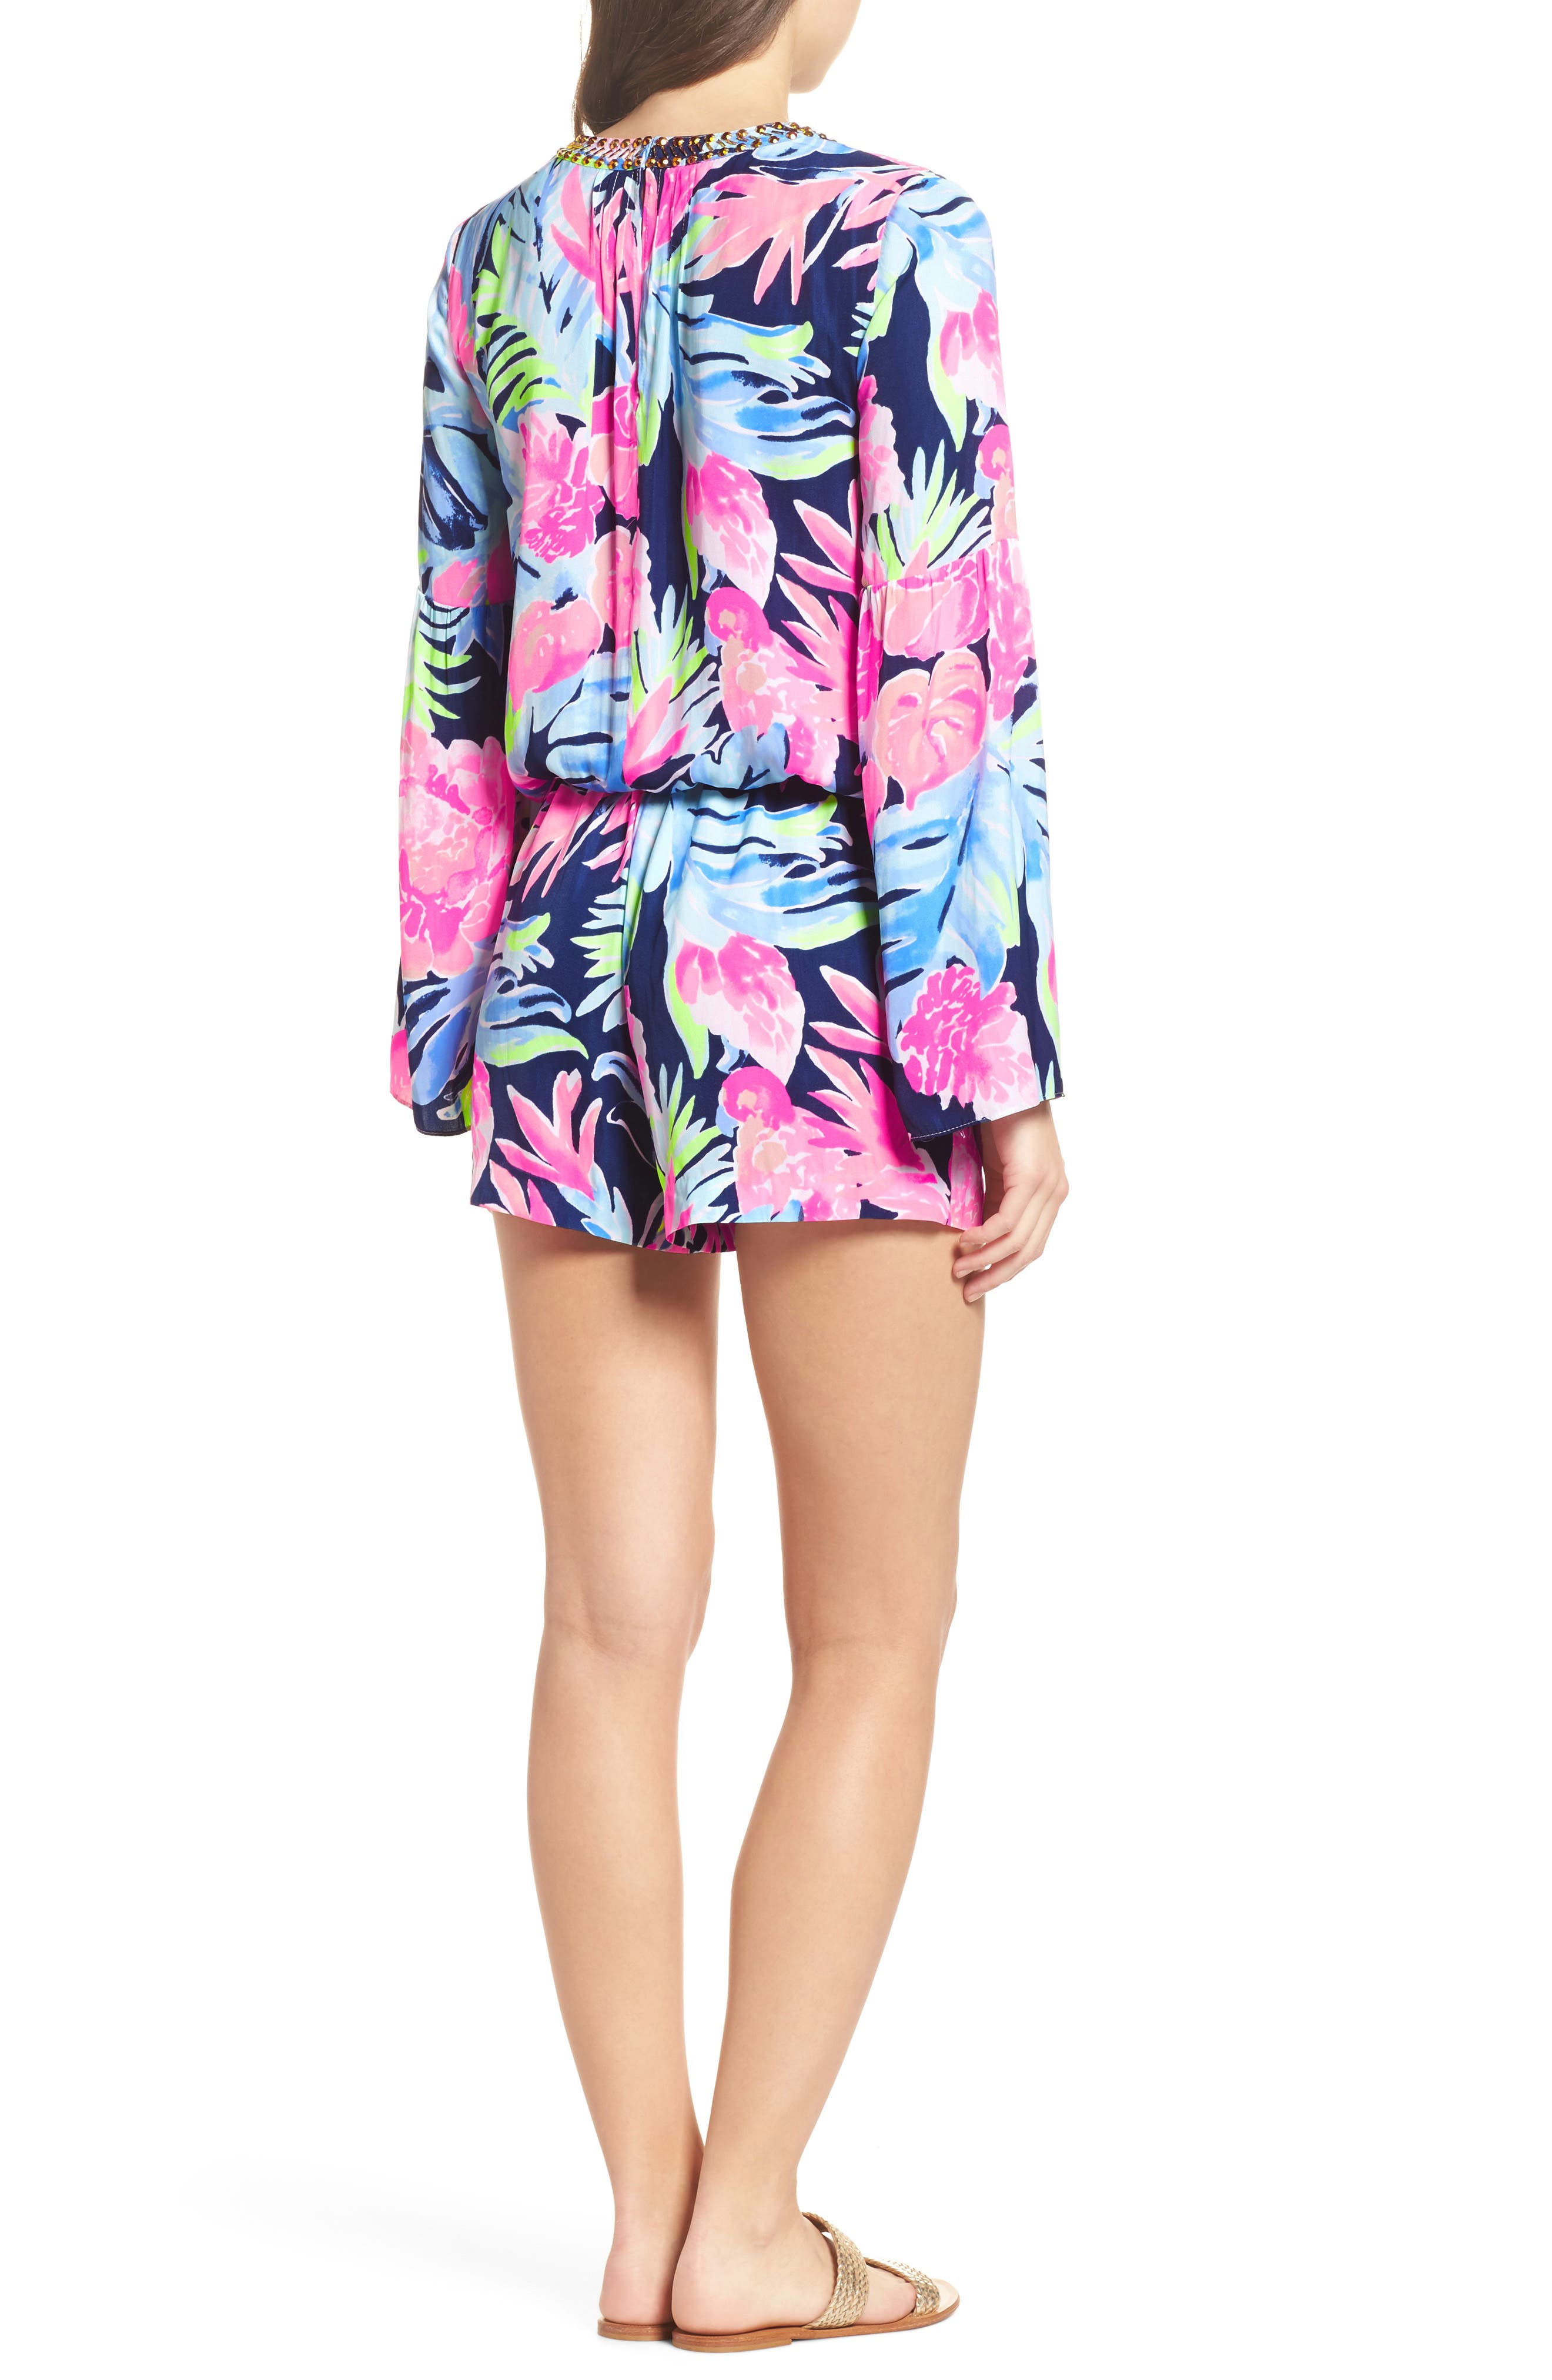 Ariele Floral Romper,                             Alternate thumbnail 2, color,                             High Tide Tropicolada